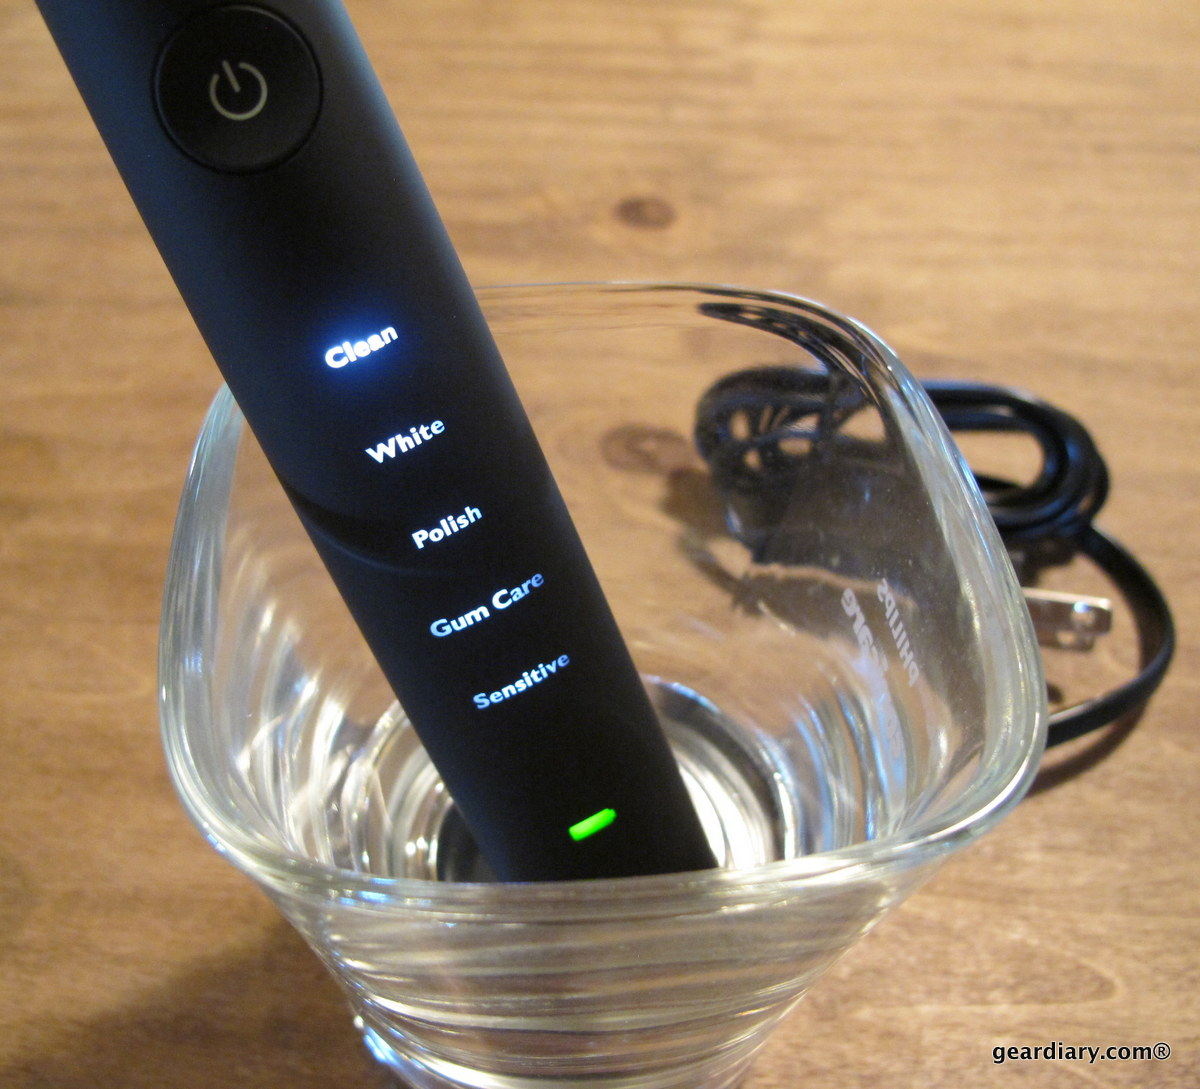 GearDiary Sonicare DiamondClean Sonic Toothbrush Review - Judie & Dan Mouth Off About Oral Hygiene